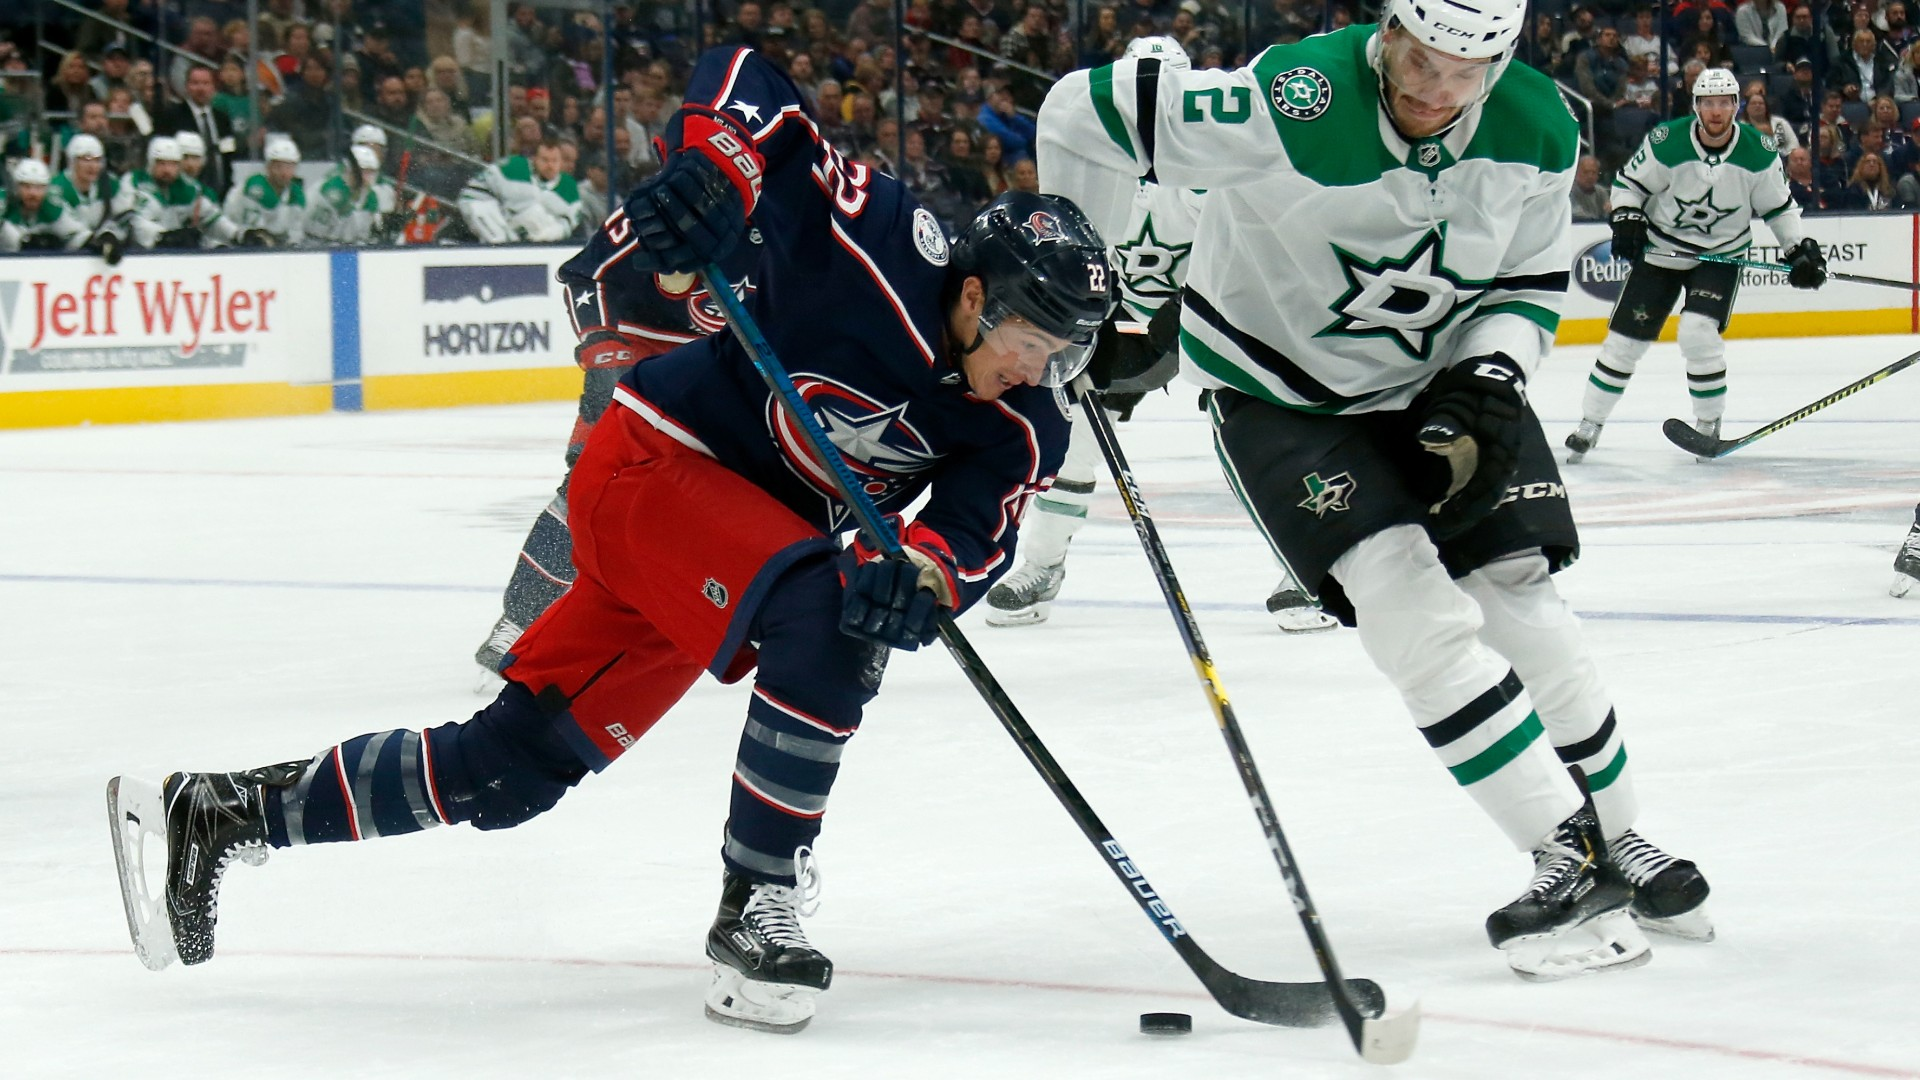 Columbus Blue Jackets' Sonny Milano stuns Dallas Stars with between-the-legs goal